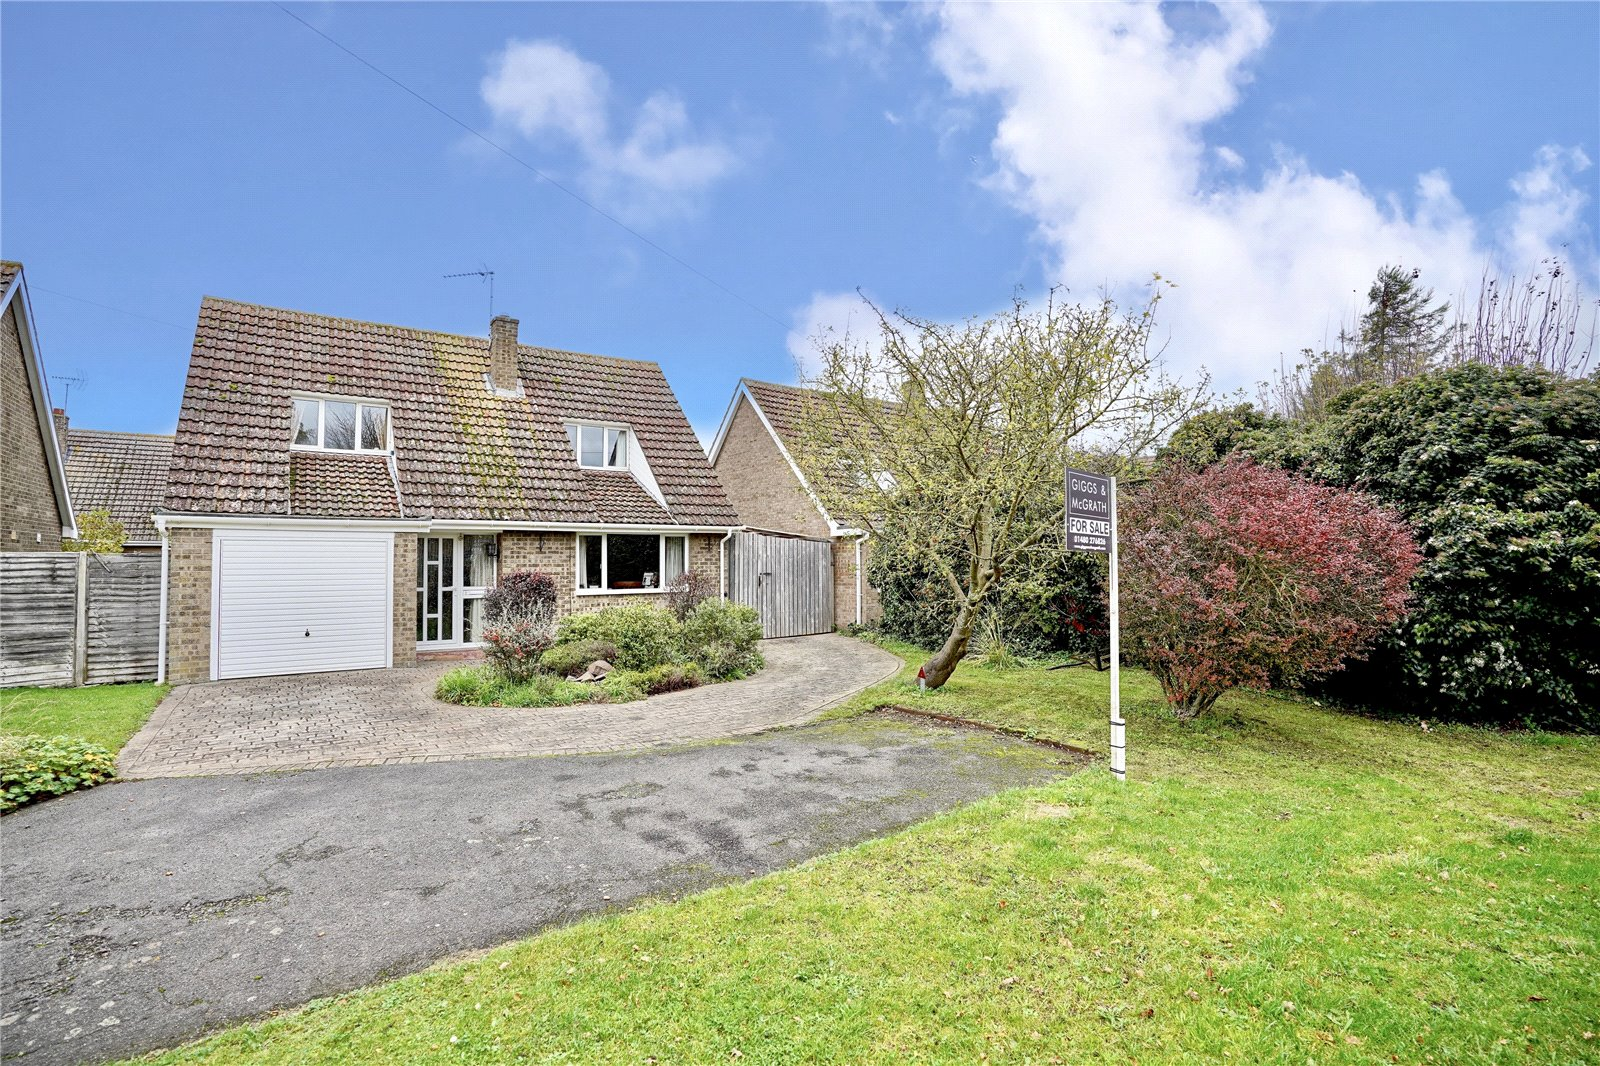 3 bed house for sale in Somersham, PE28 3HP - Property Image 1